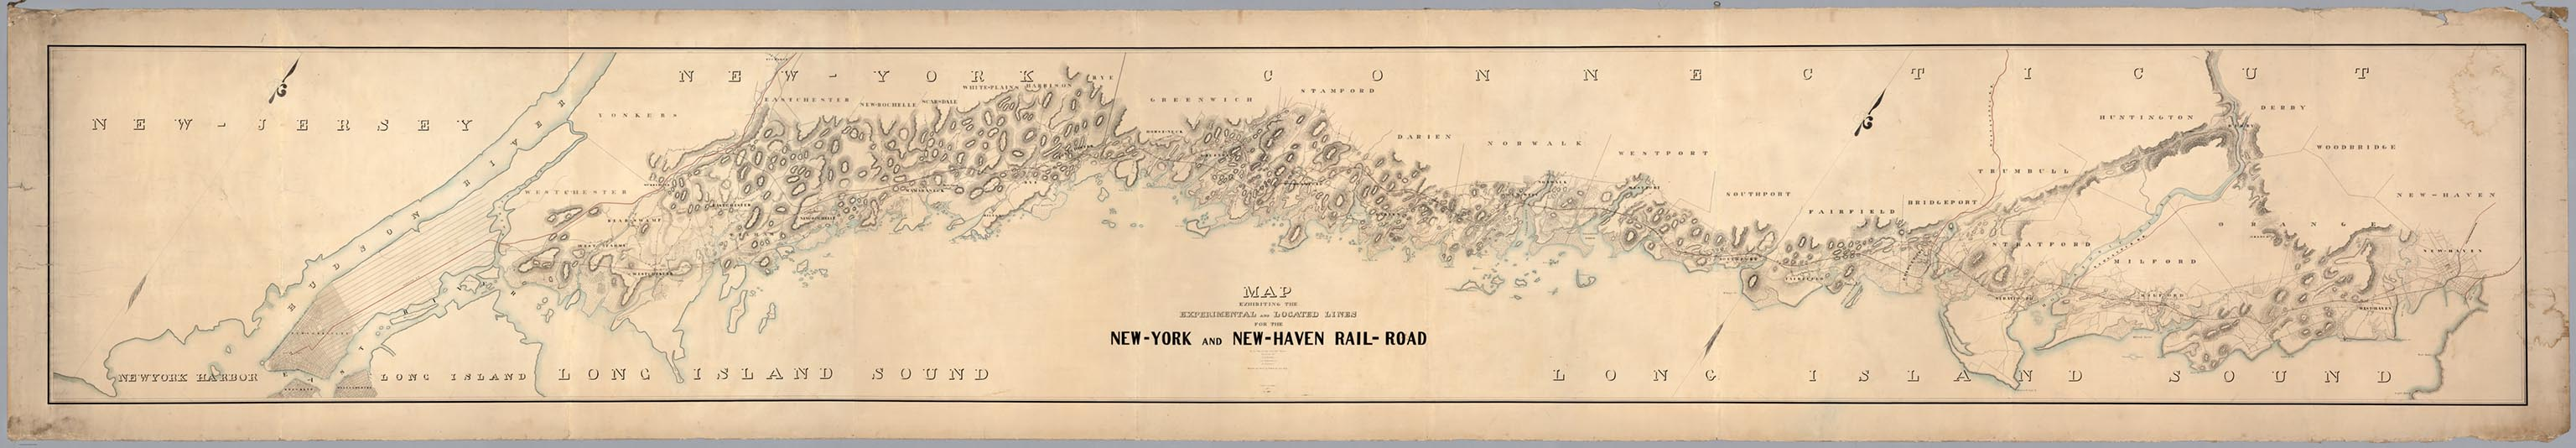 Browse All  Railroad David Rumsey Historical Map Collection - Railway map usa 1890